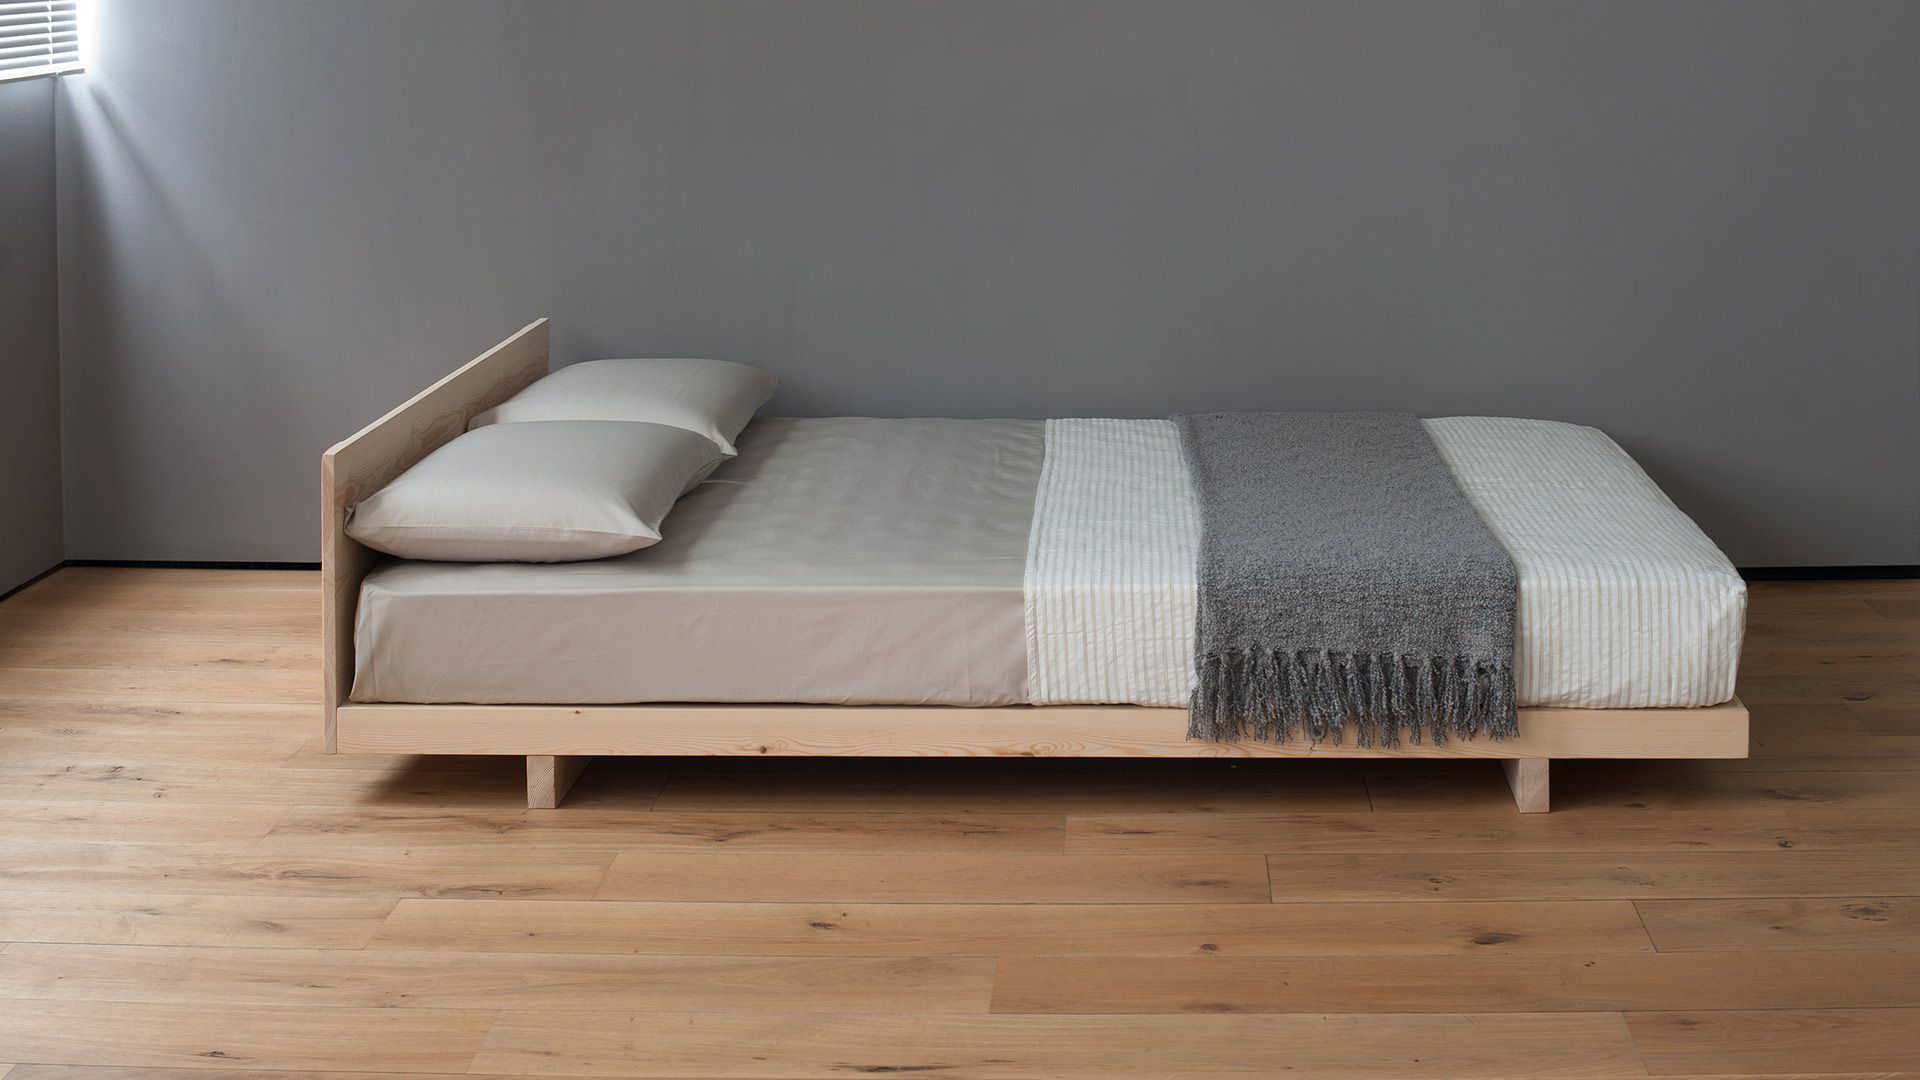 A simple stylish Japanese bed with headboard